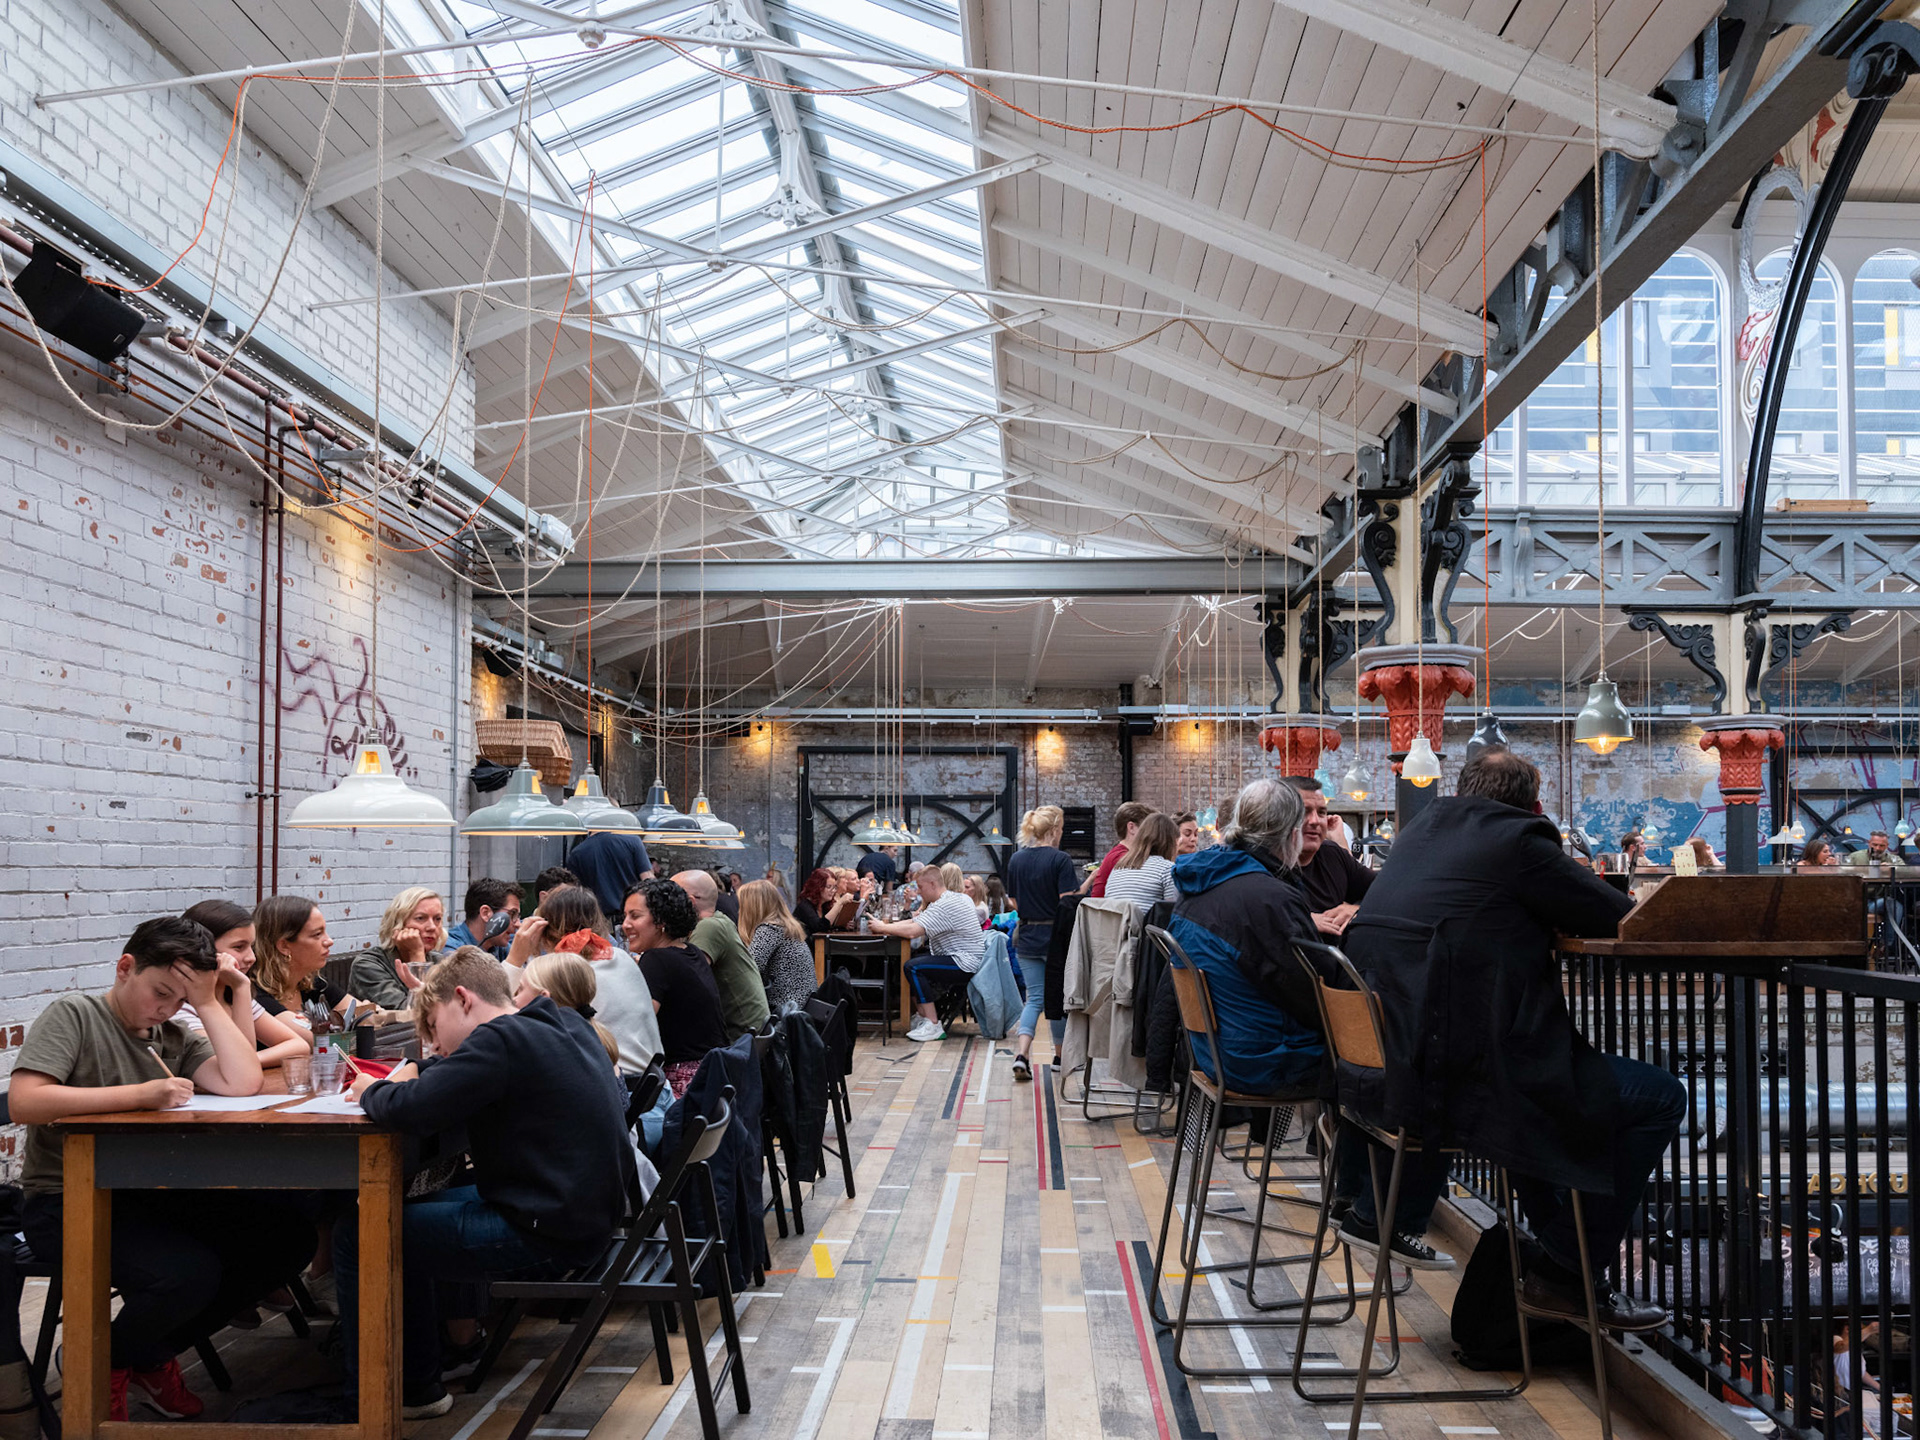 Architectural Photography Mackie Mayor irestaurant inside upstairs with people sat at tables